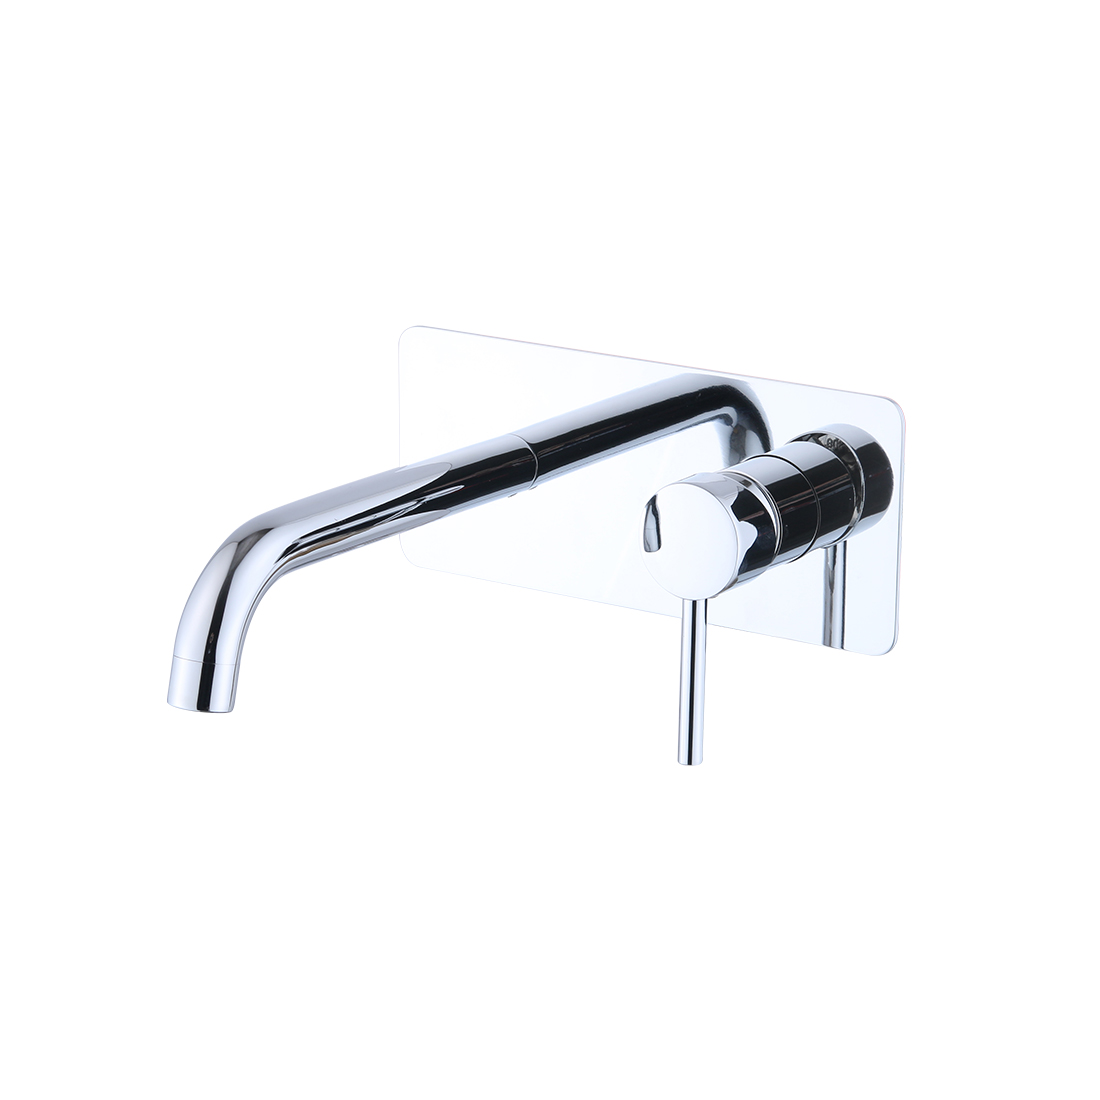 FLG Chrome Bathroom Faucet Wall Mounted Faucets Single Hole Wall Mounted Brass Basin Mixer Taps, Basin Sink Mixer Tap Faucet Hot and Cold Spout Mixer Bathtub Faucet